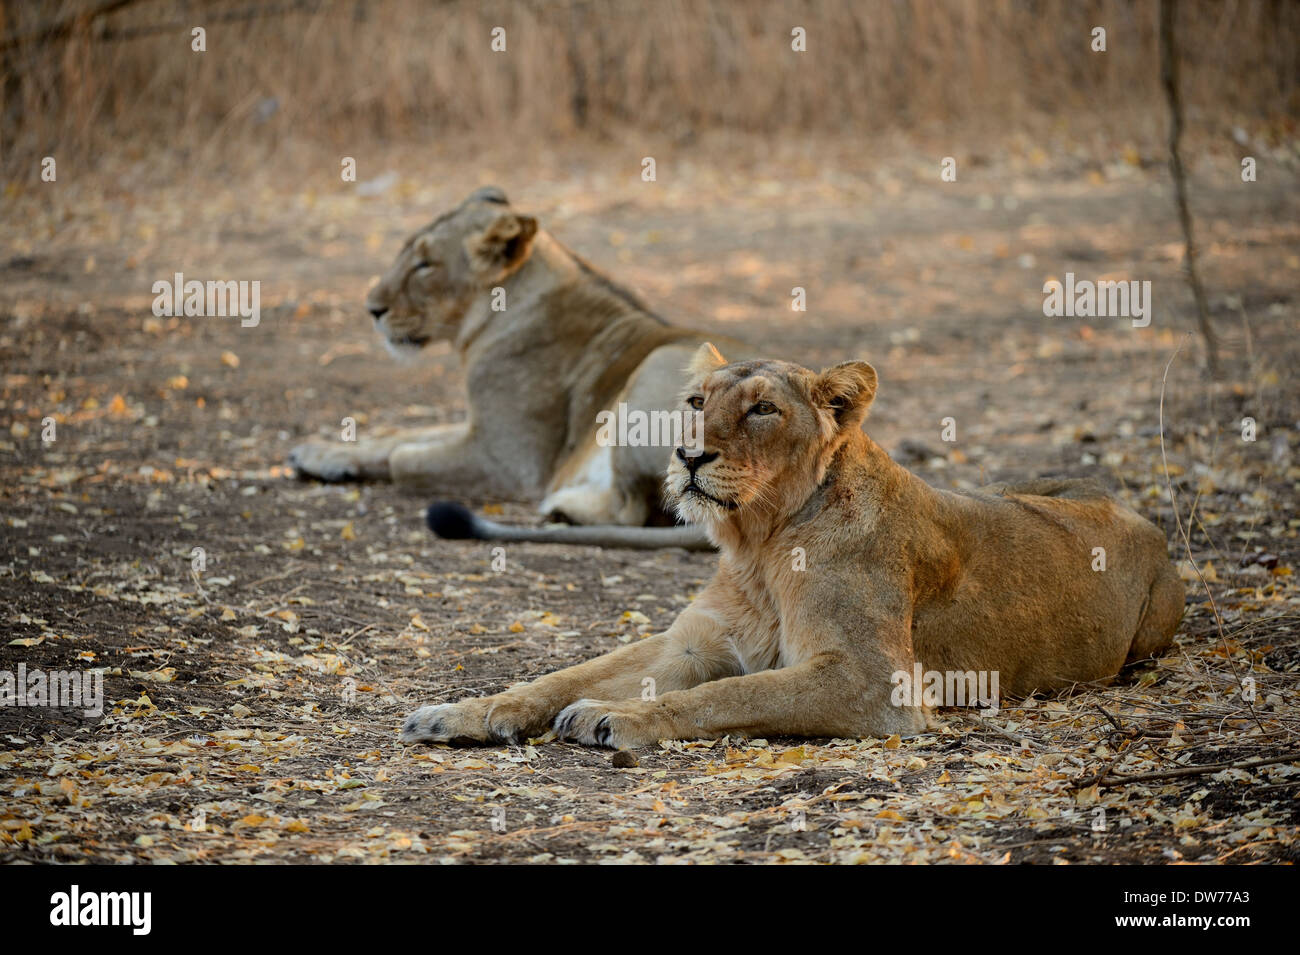 Young Lion Cubs relaxing after drinking water. - Stock Image